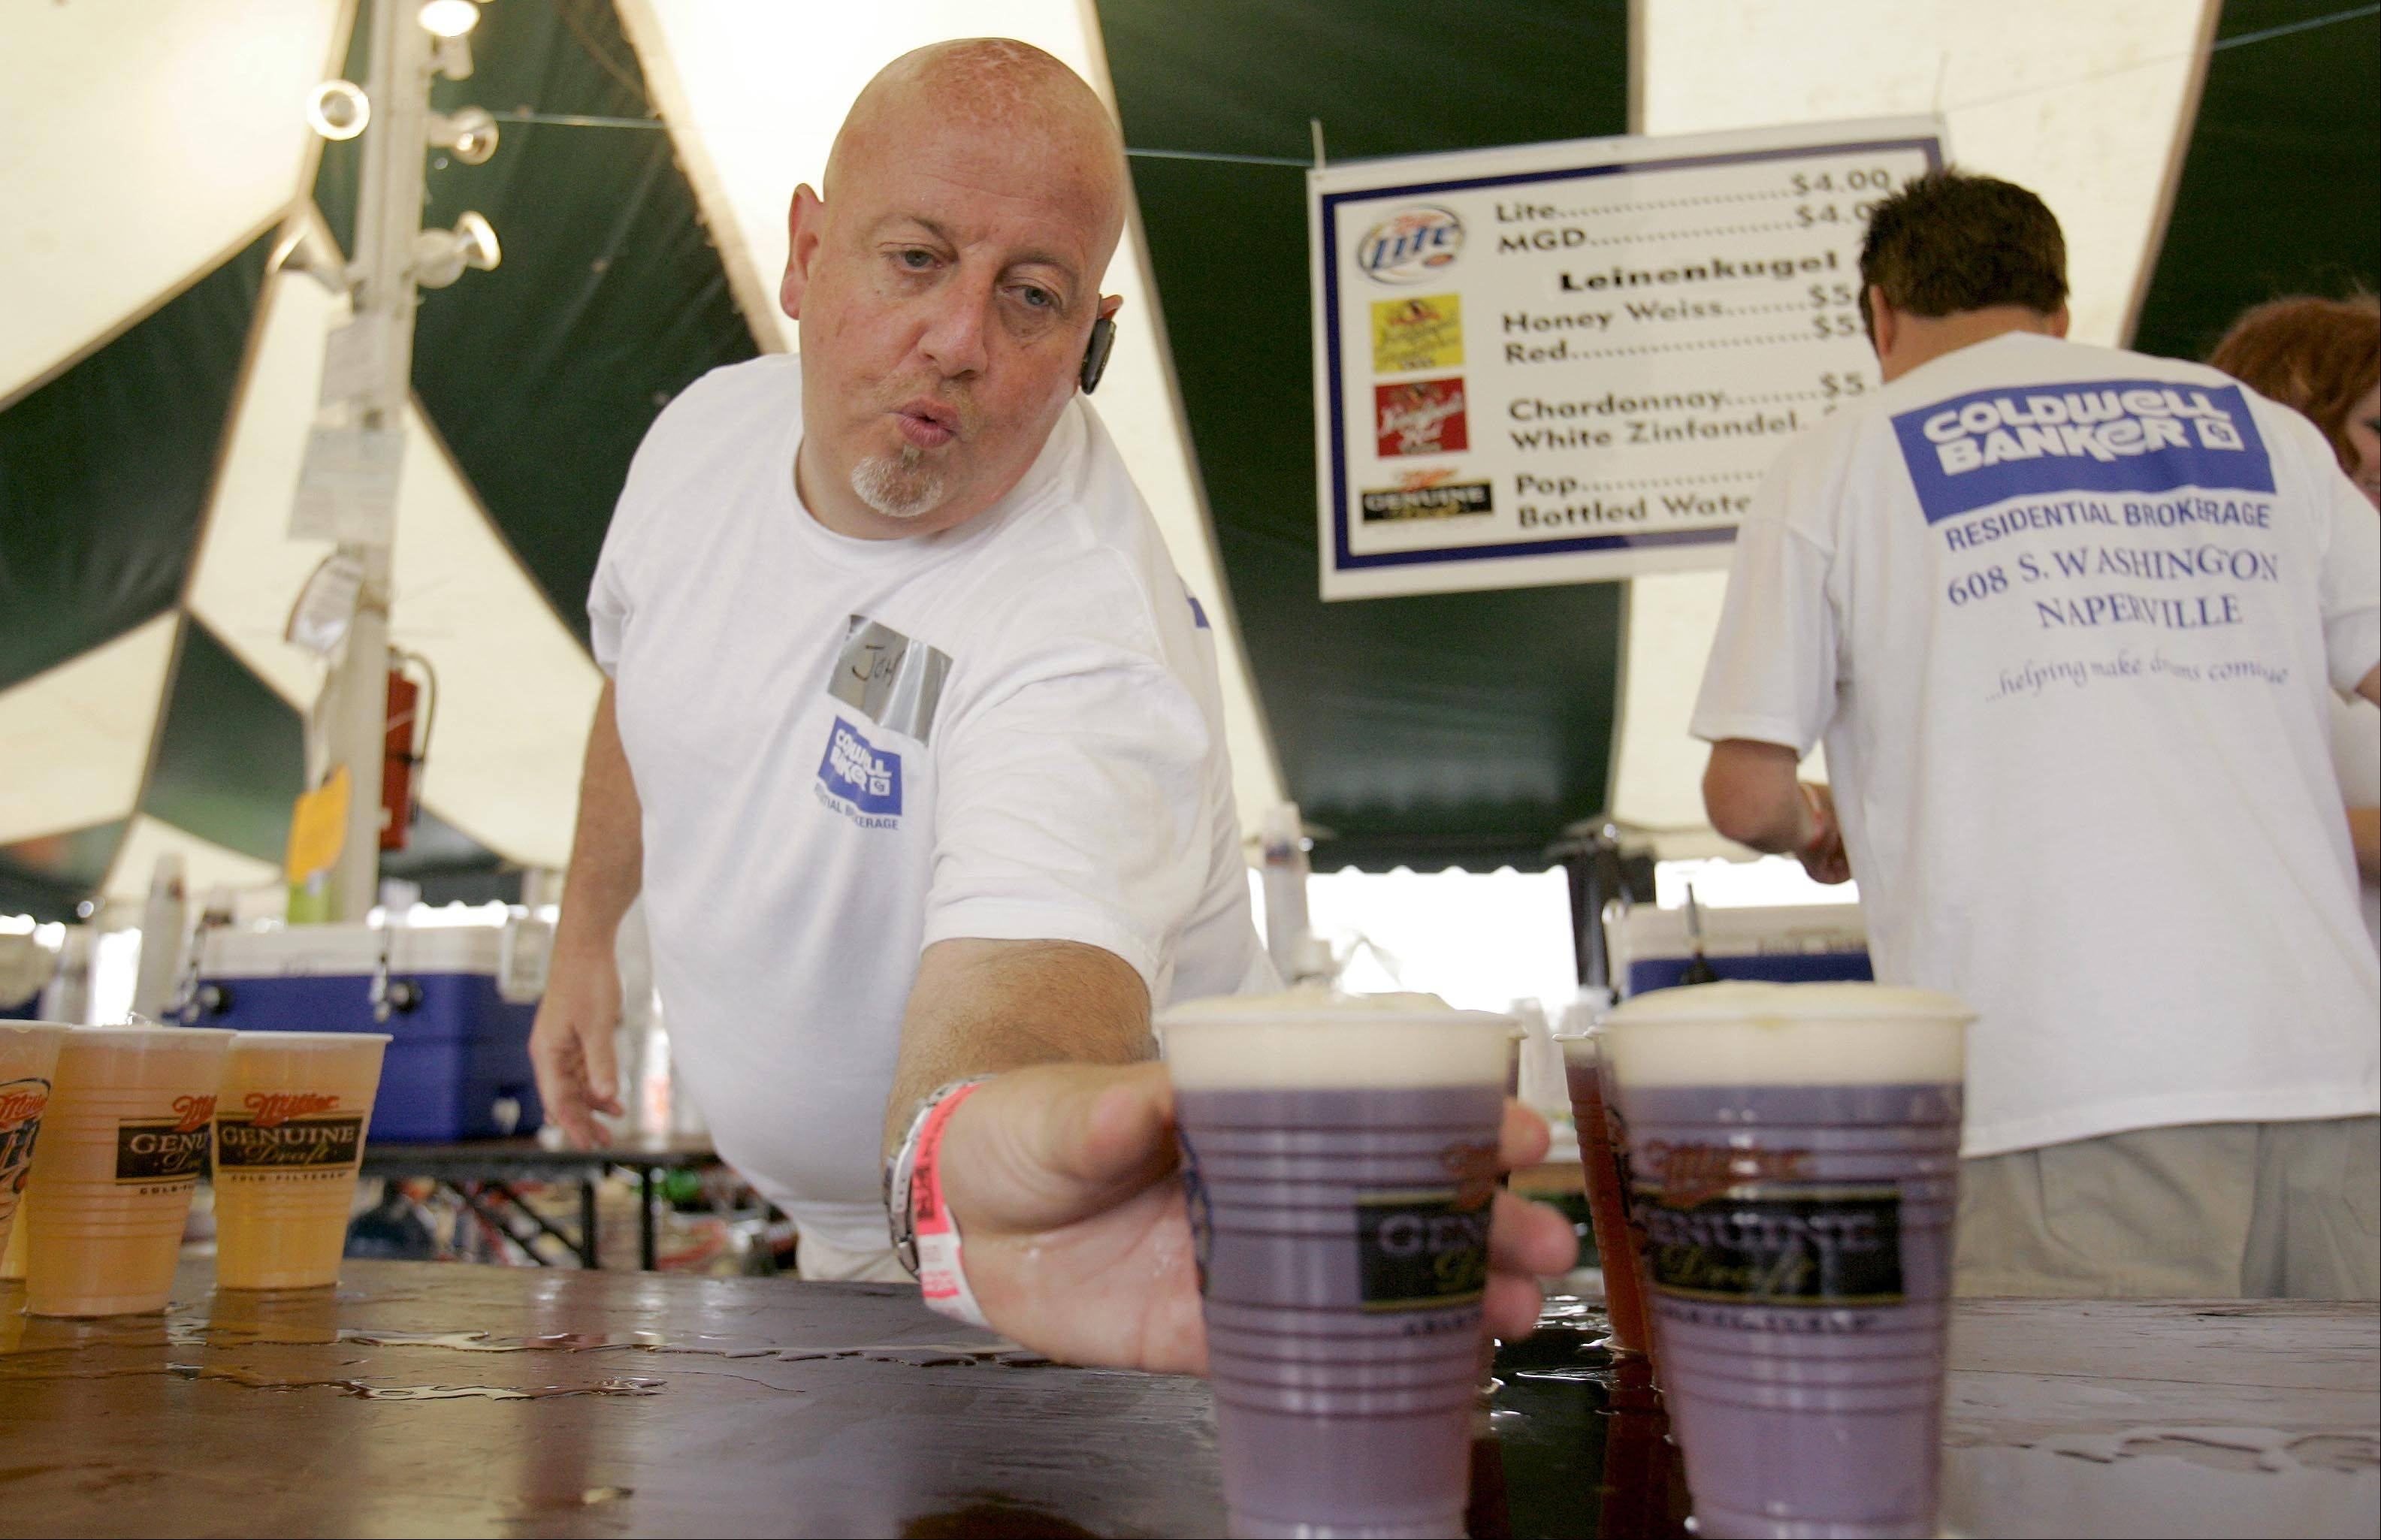 Naperville Mayor George Pradel says he thinks transitioning to a ticket-only beer sale process at local fests would make serving jobs easier for volunteers.